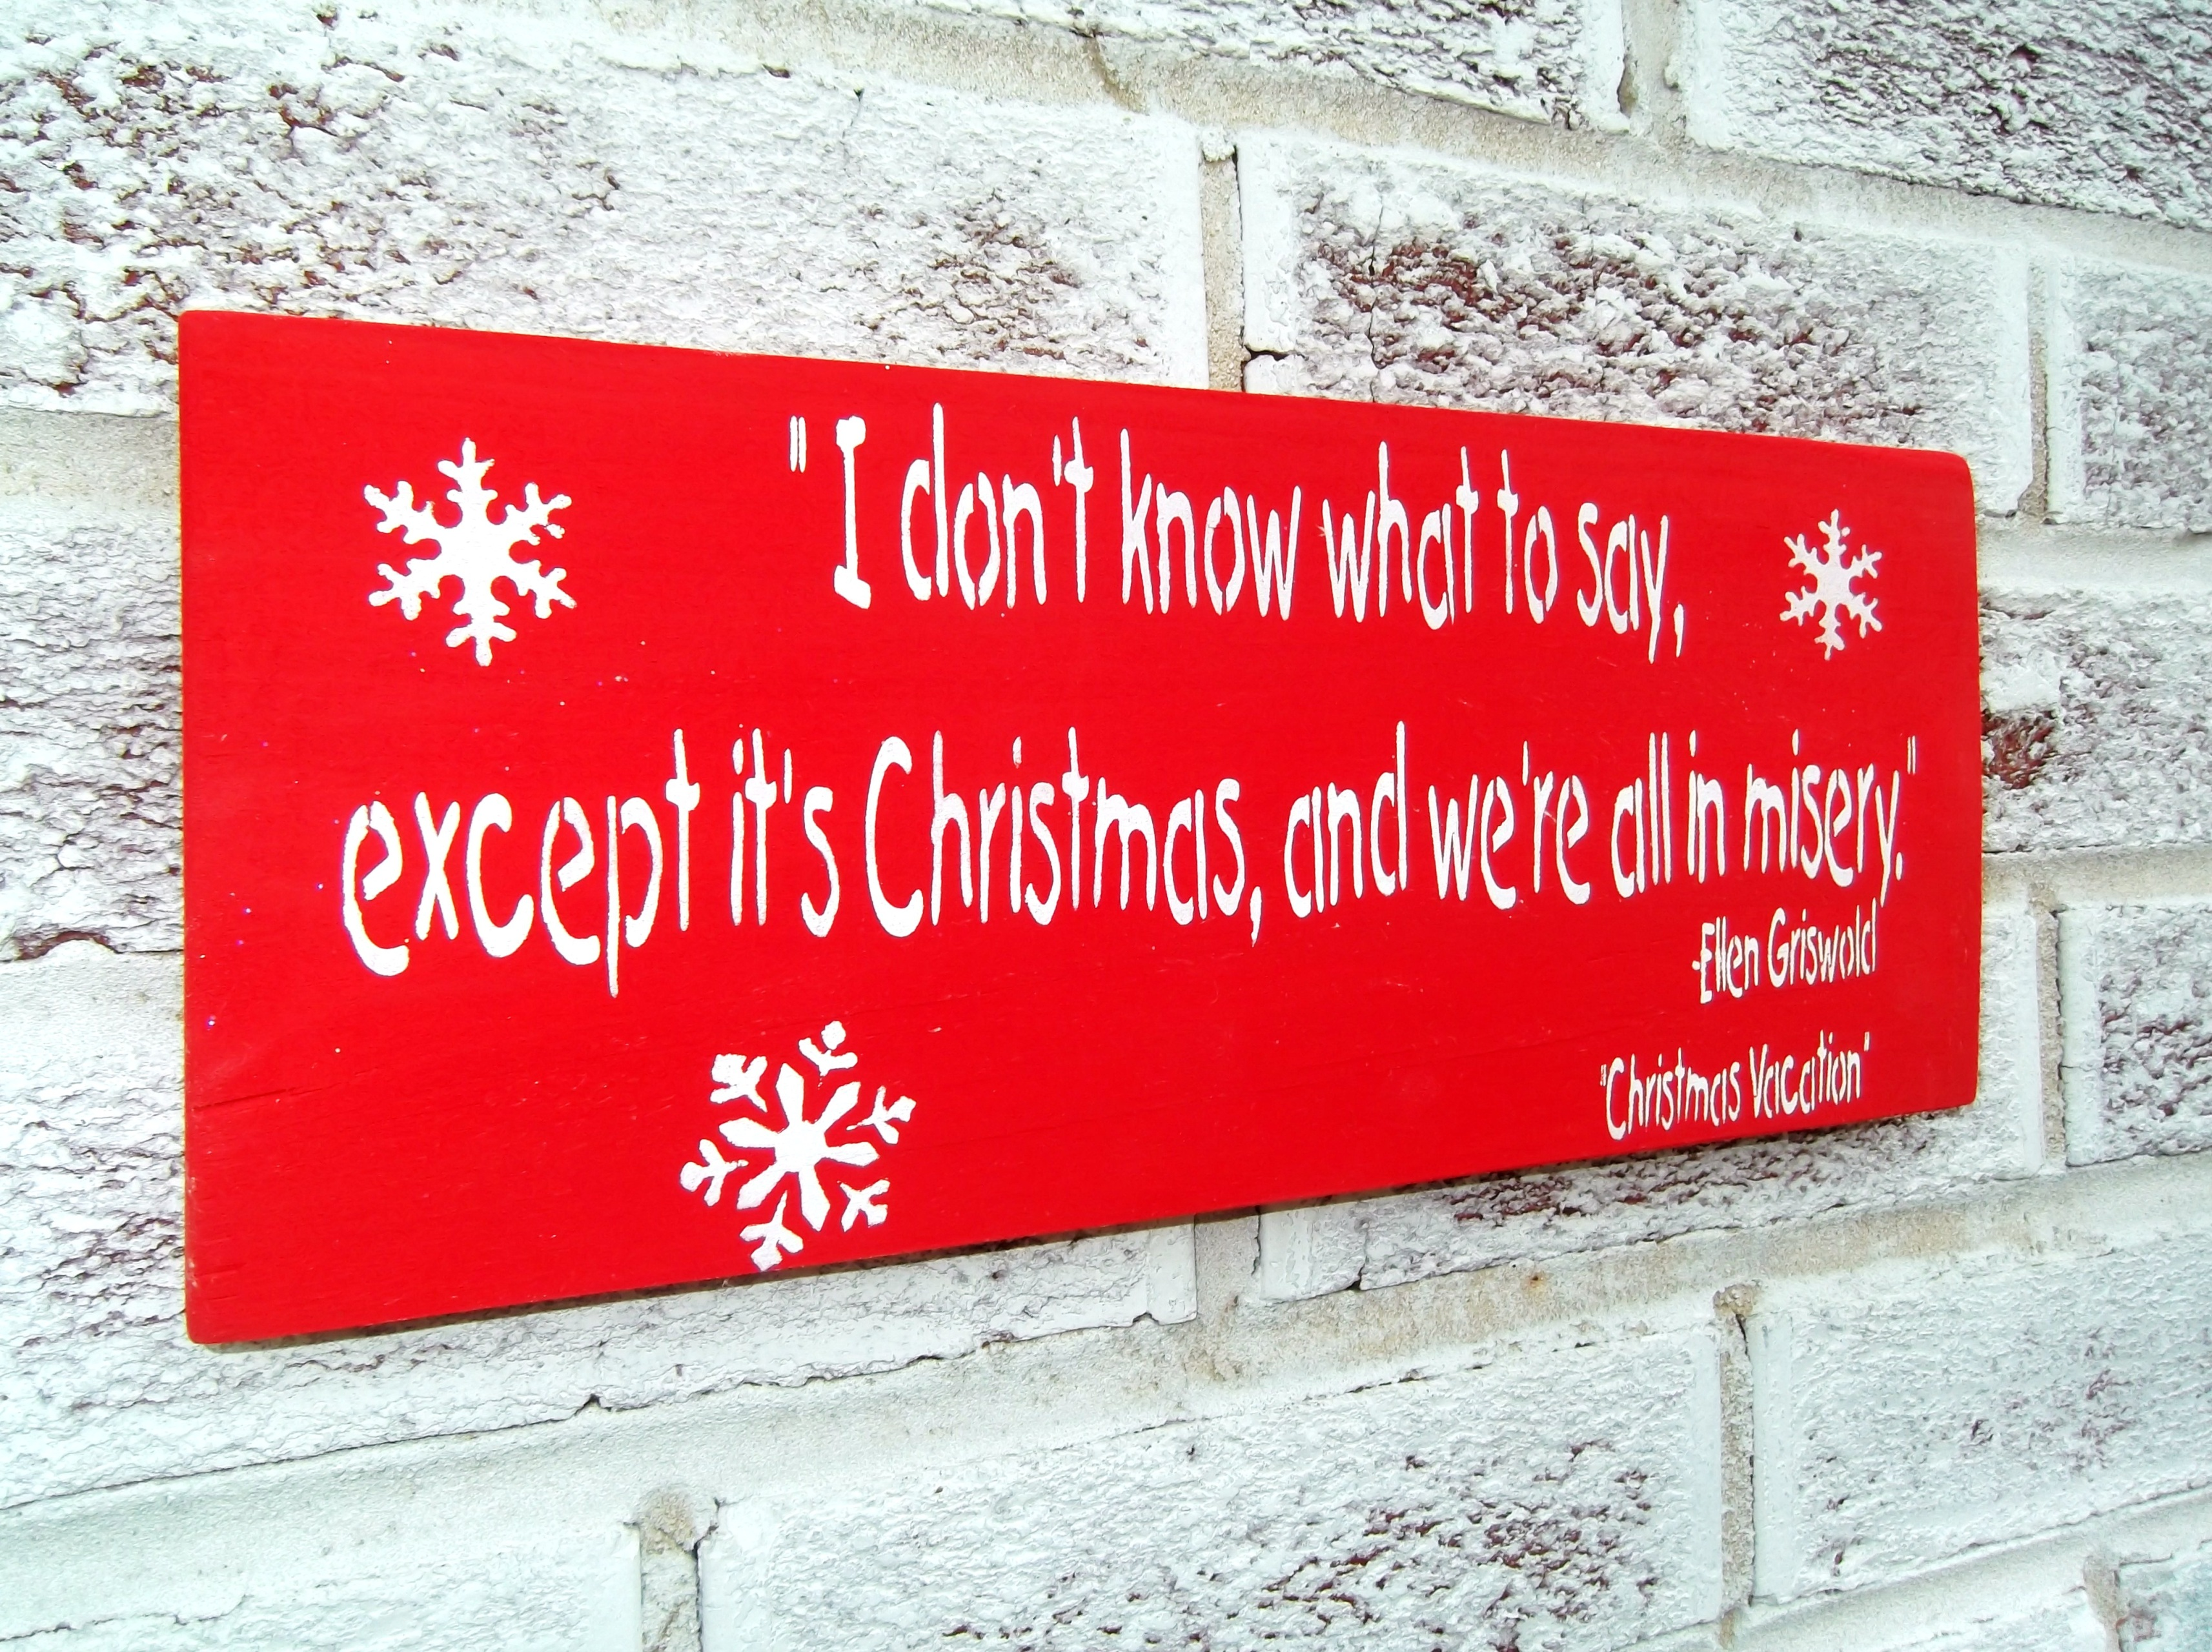 Wonderful Christmas Signs Part - 9: Funny Christmas Signs 8 Background Wallpaper